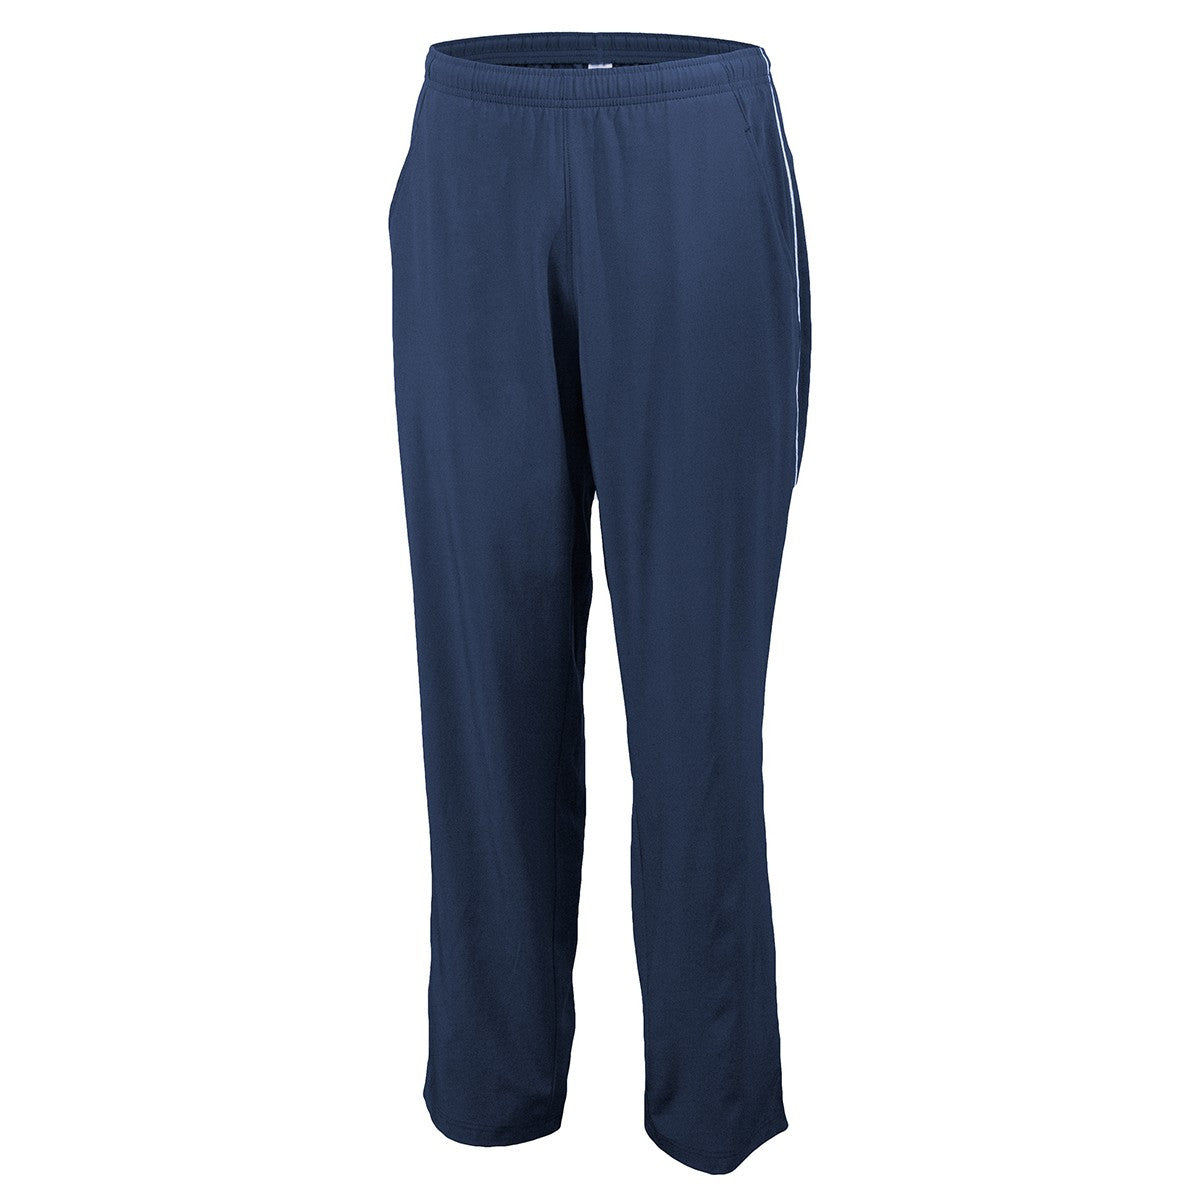 LW Navy Athletic Pant